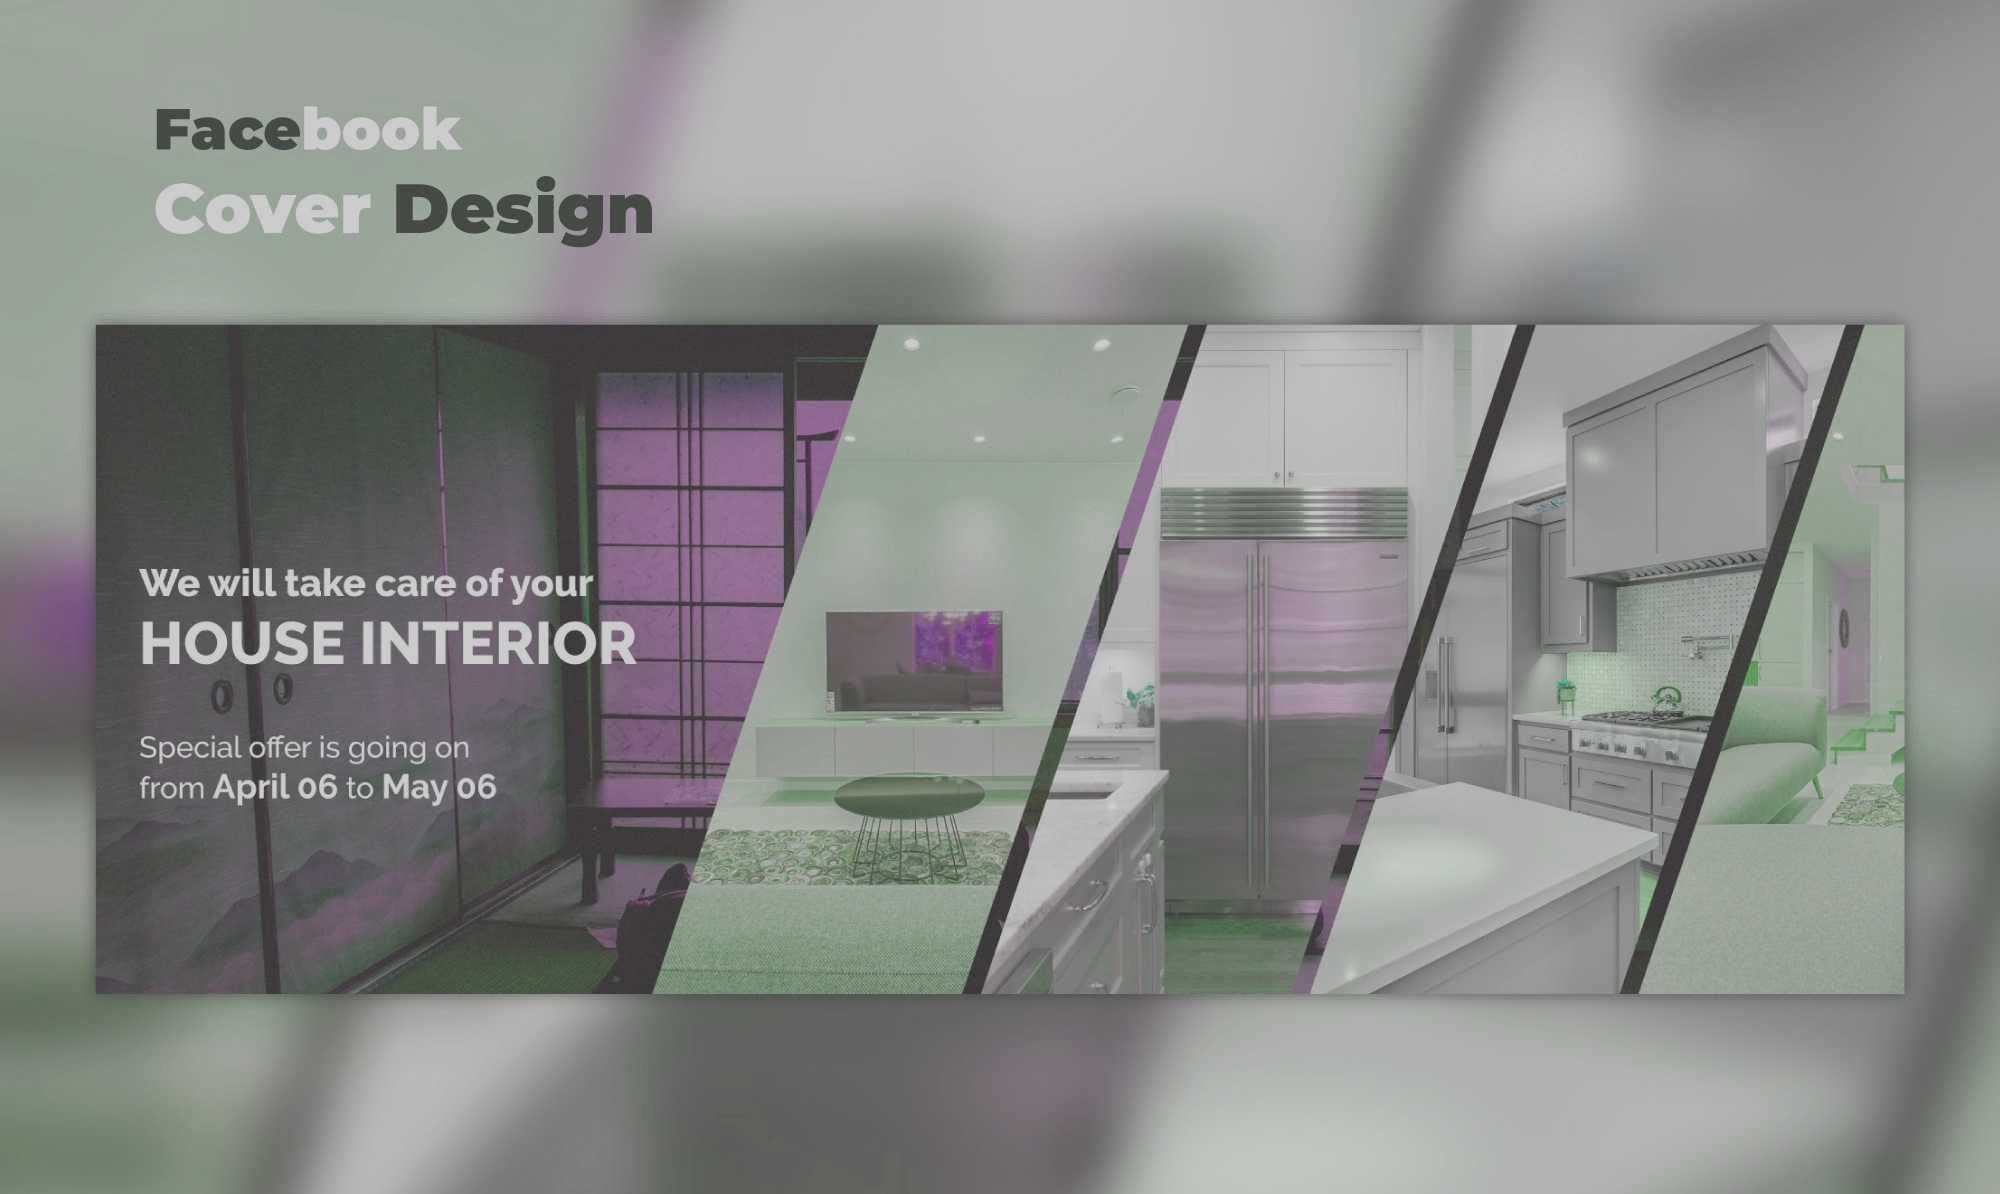 Want to Design Professional,  attractive and eye catchy Facebook cover I will do this for you